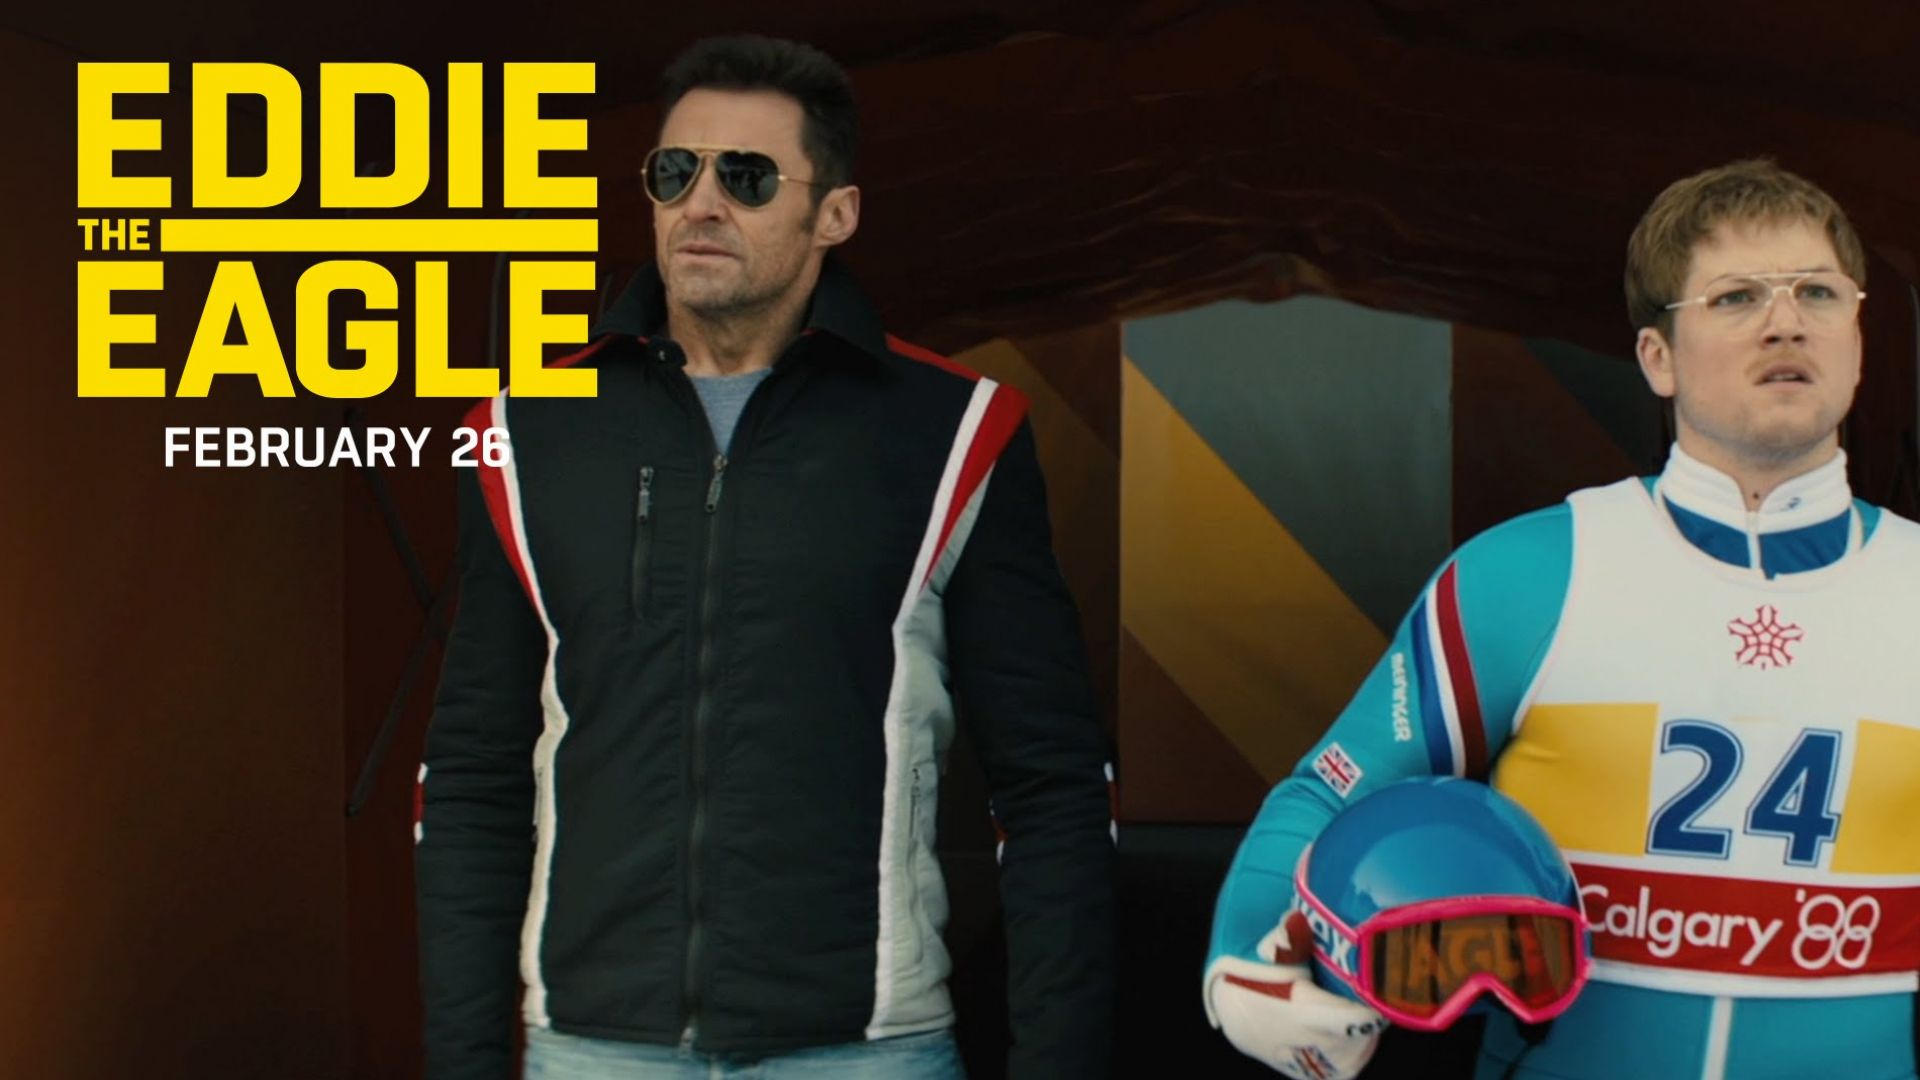 """Eddie The Eagle """"You Gotta Fly"""" TV Commercial"""